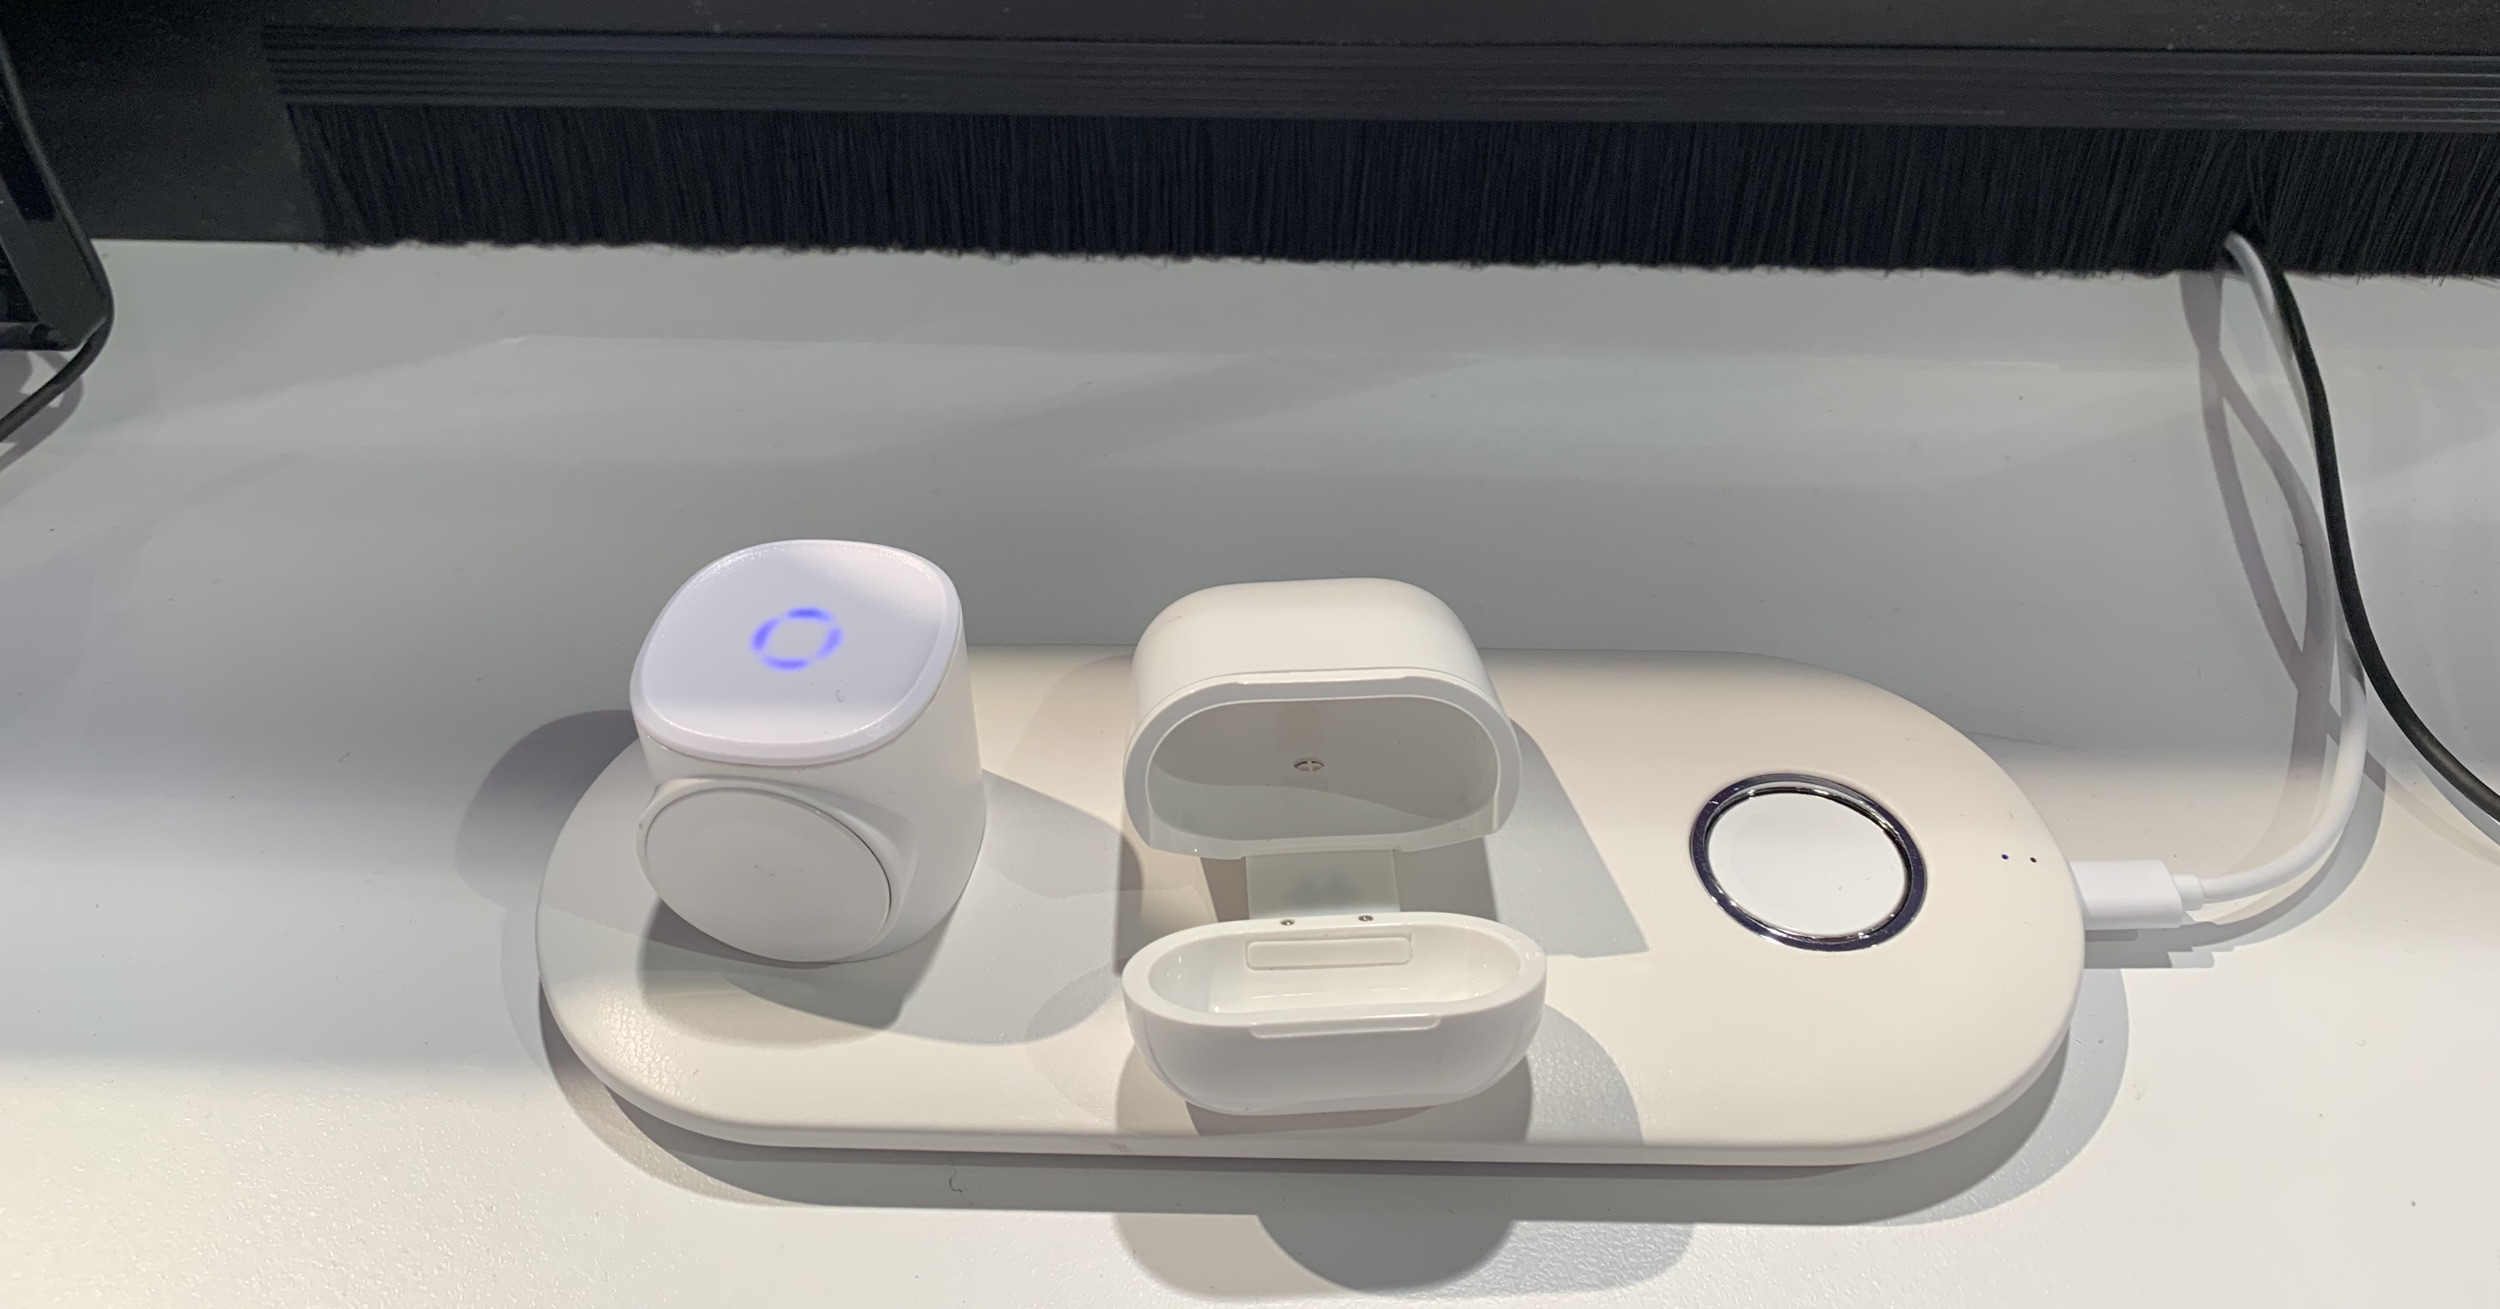 CES – Hyper's New Wireless AirPods Charging Case